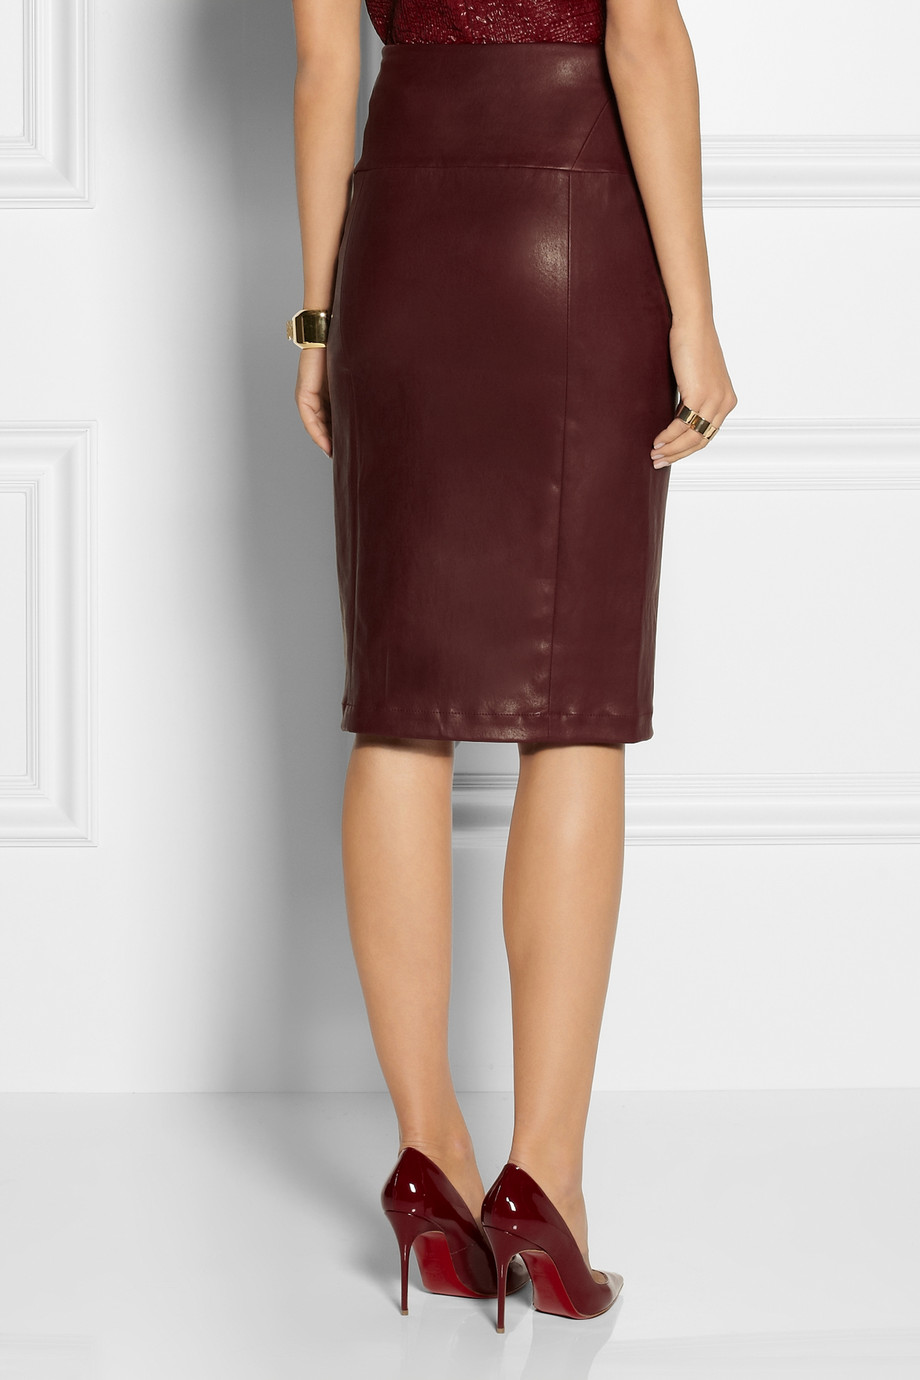 Zero   maria cornejo Nobi Stretch Leather Pencil Skirt in Red | Lyst